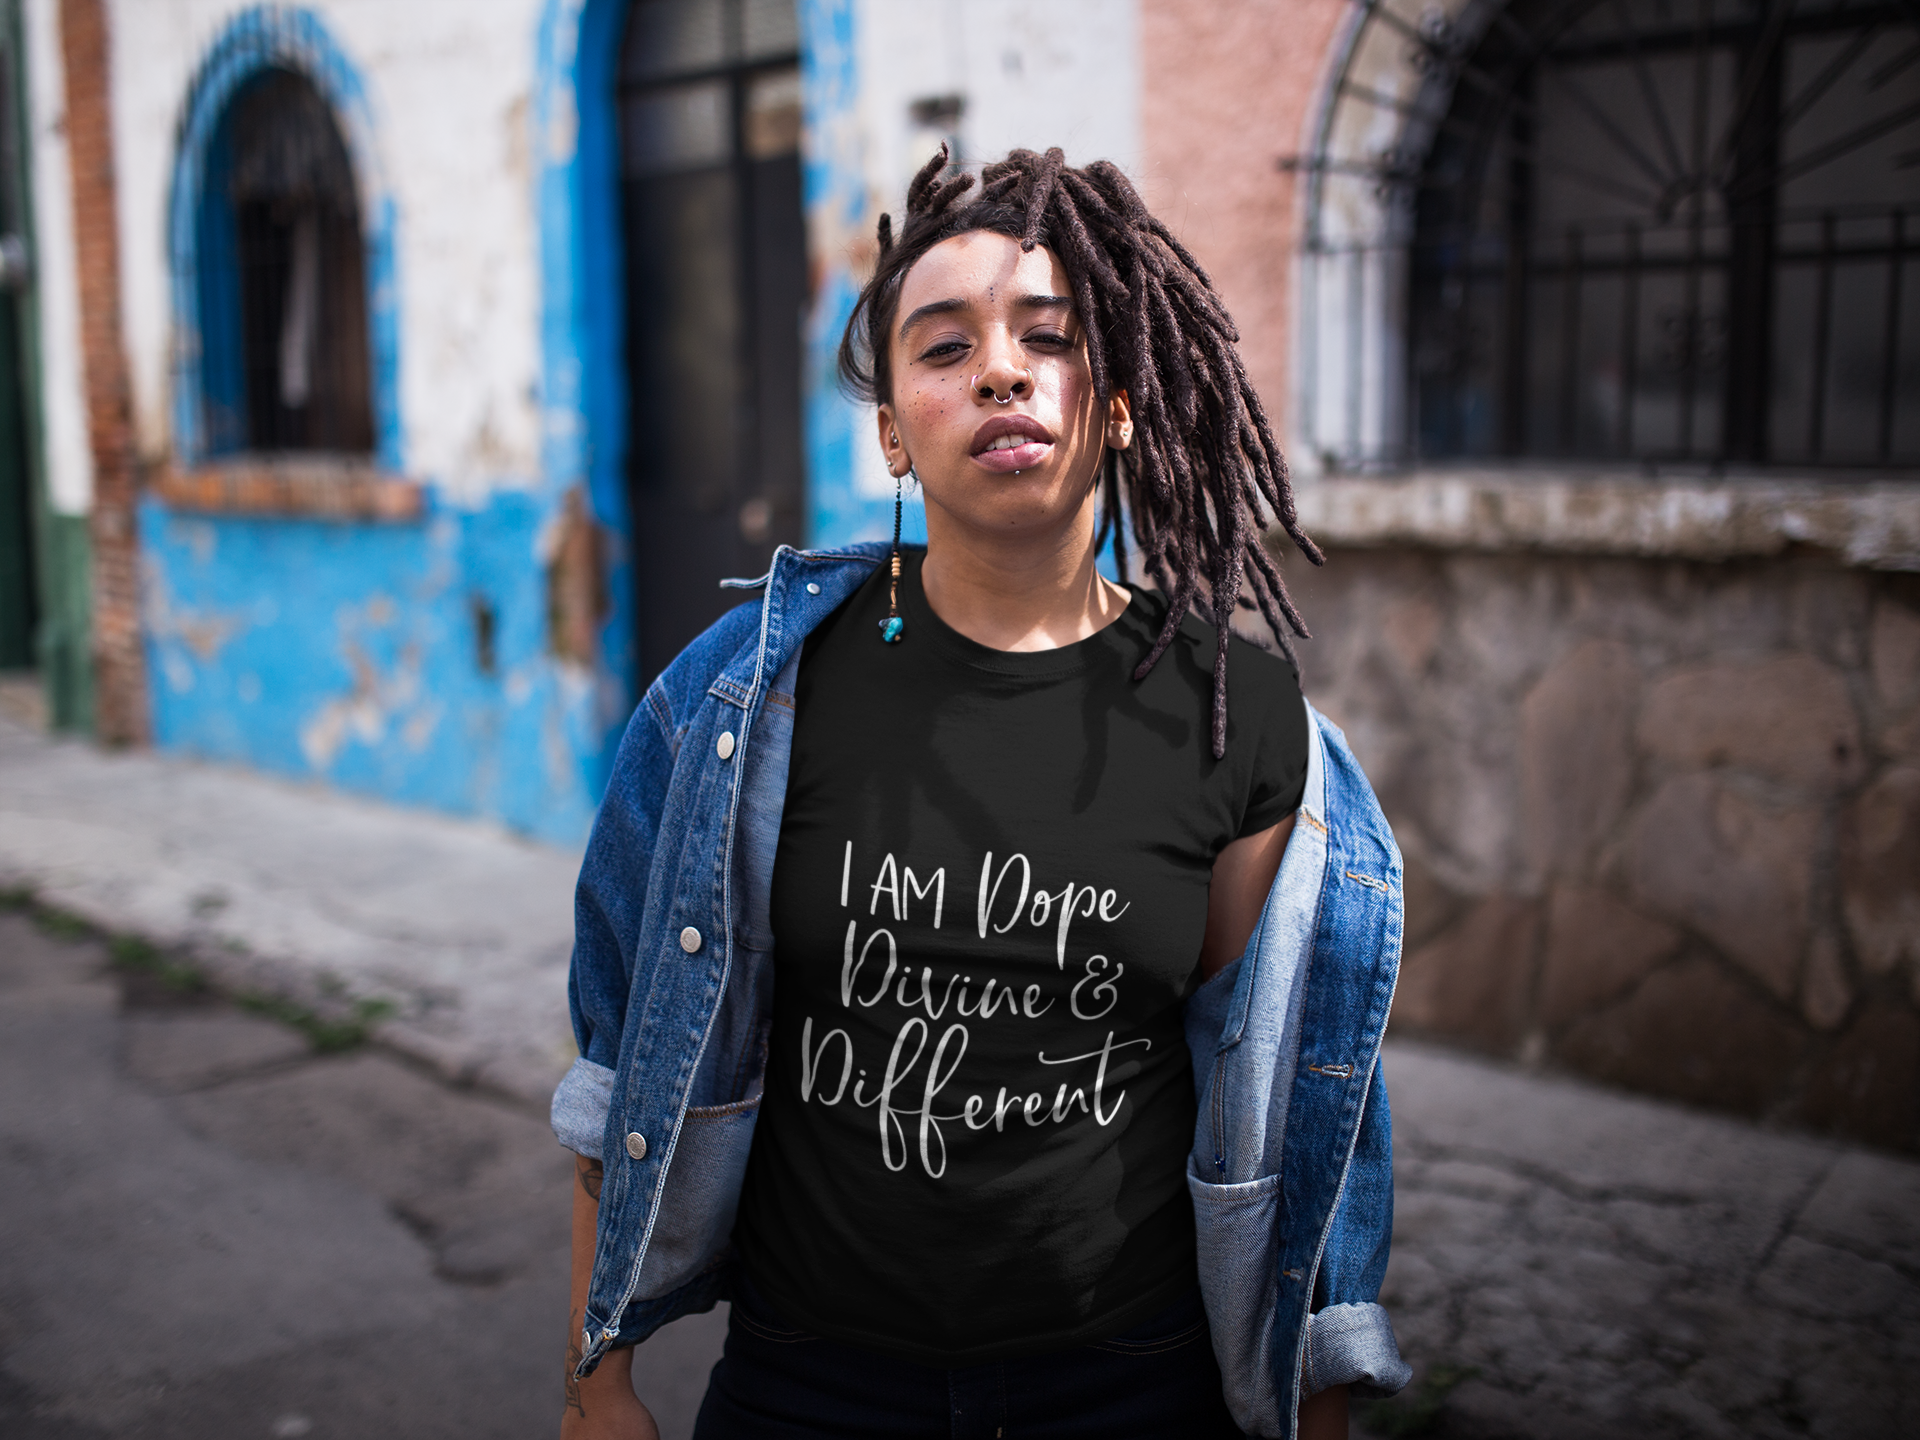 dreadlocked-girl-with-an-attitude-wearing-a-t-shirt-mockup-outdoors-a17141